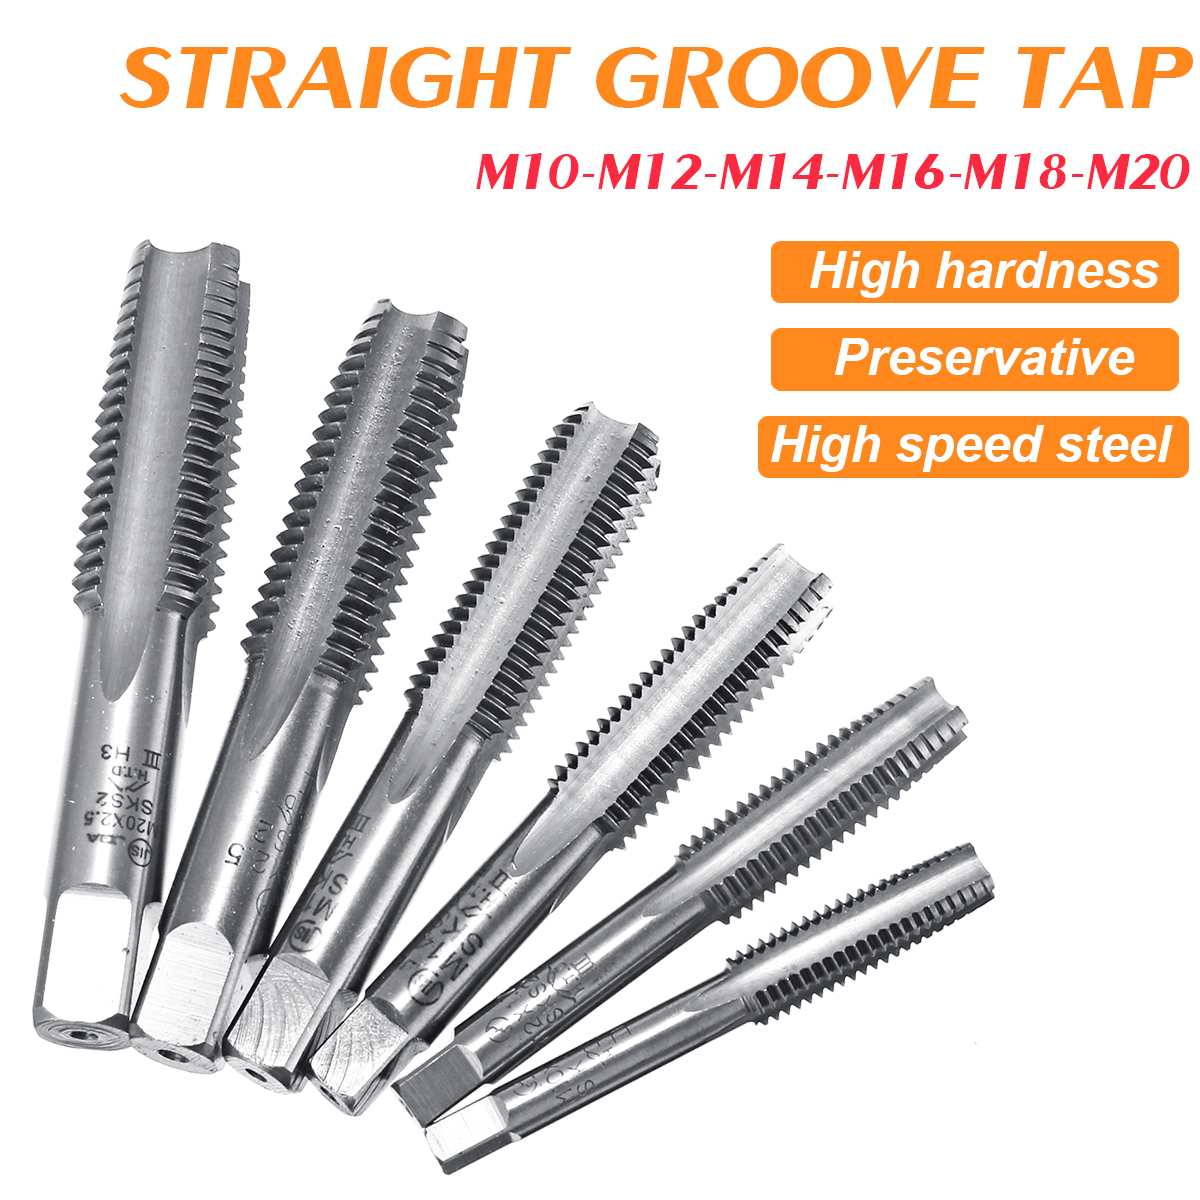 3 Pcs/Set M10 M12 M14 M16 M18 M20 HSS Hand Tap Set Screw Thread Metric Left Hand Drill Set Bottoming Hand Taps Tools